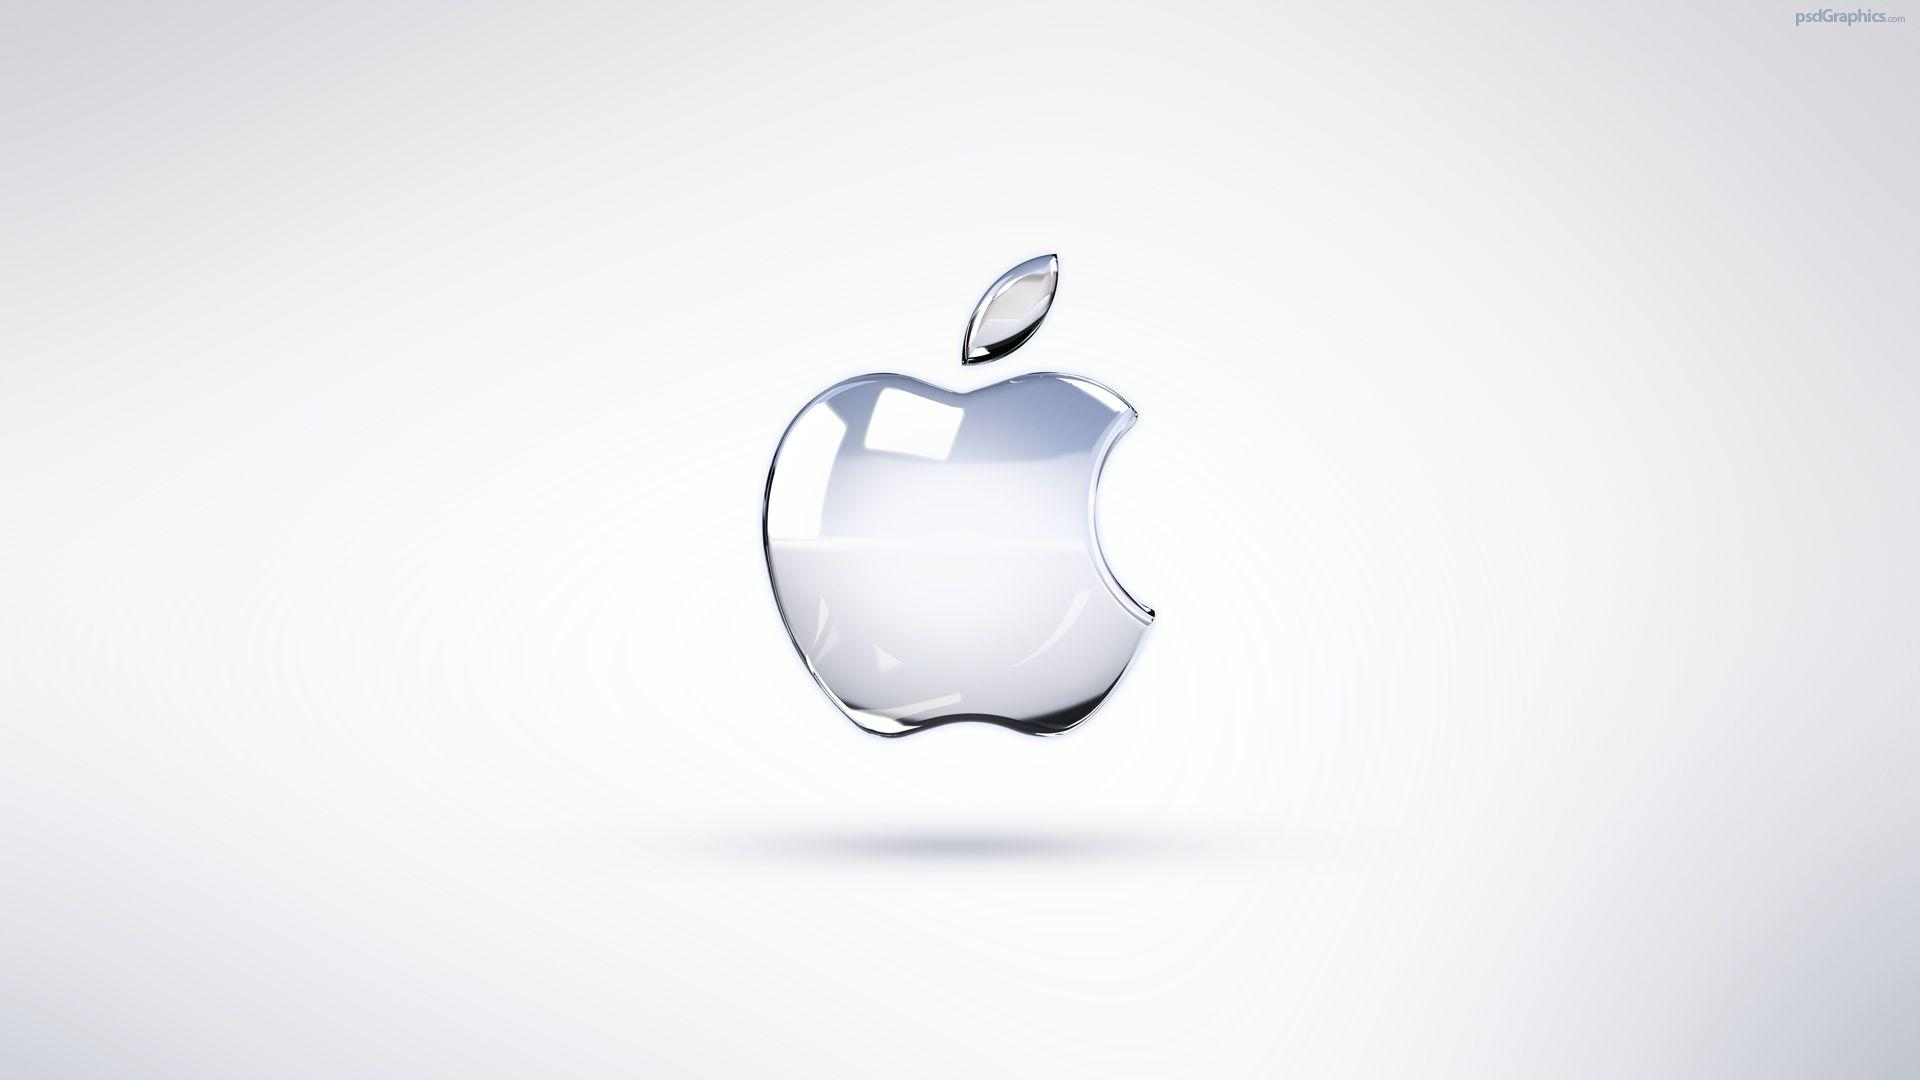 Apple HD Wallpapers for PC | fbpapa.